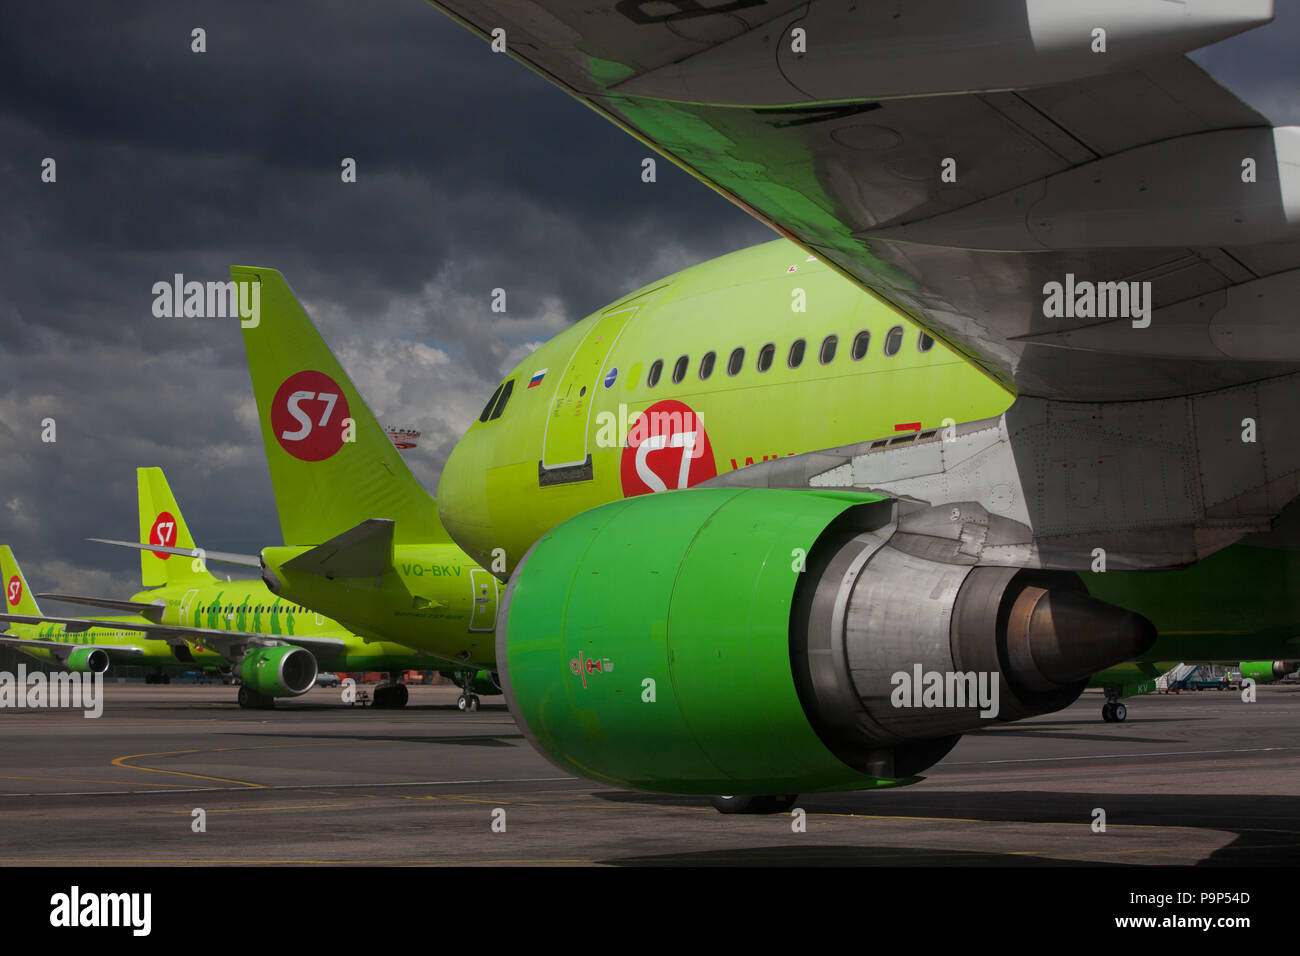 Civil jet airplanes of S7 Airlines (former Sibir) on the tarmac of Domodedovo airport, Moscow, Russia - Stock Image